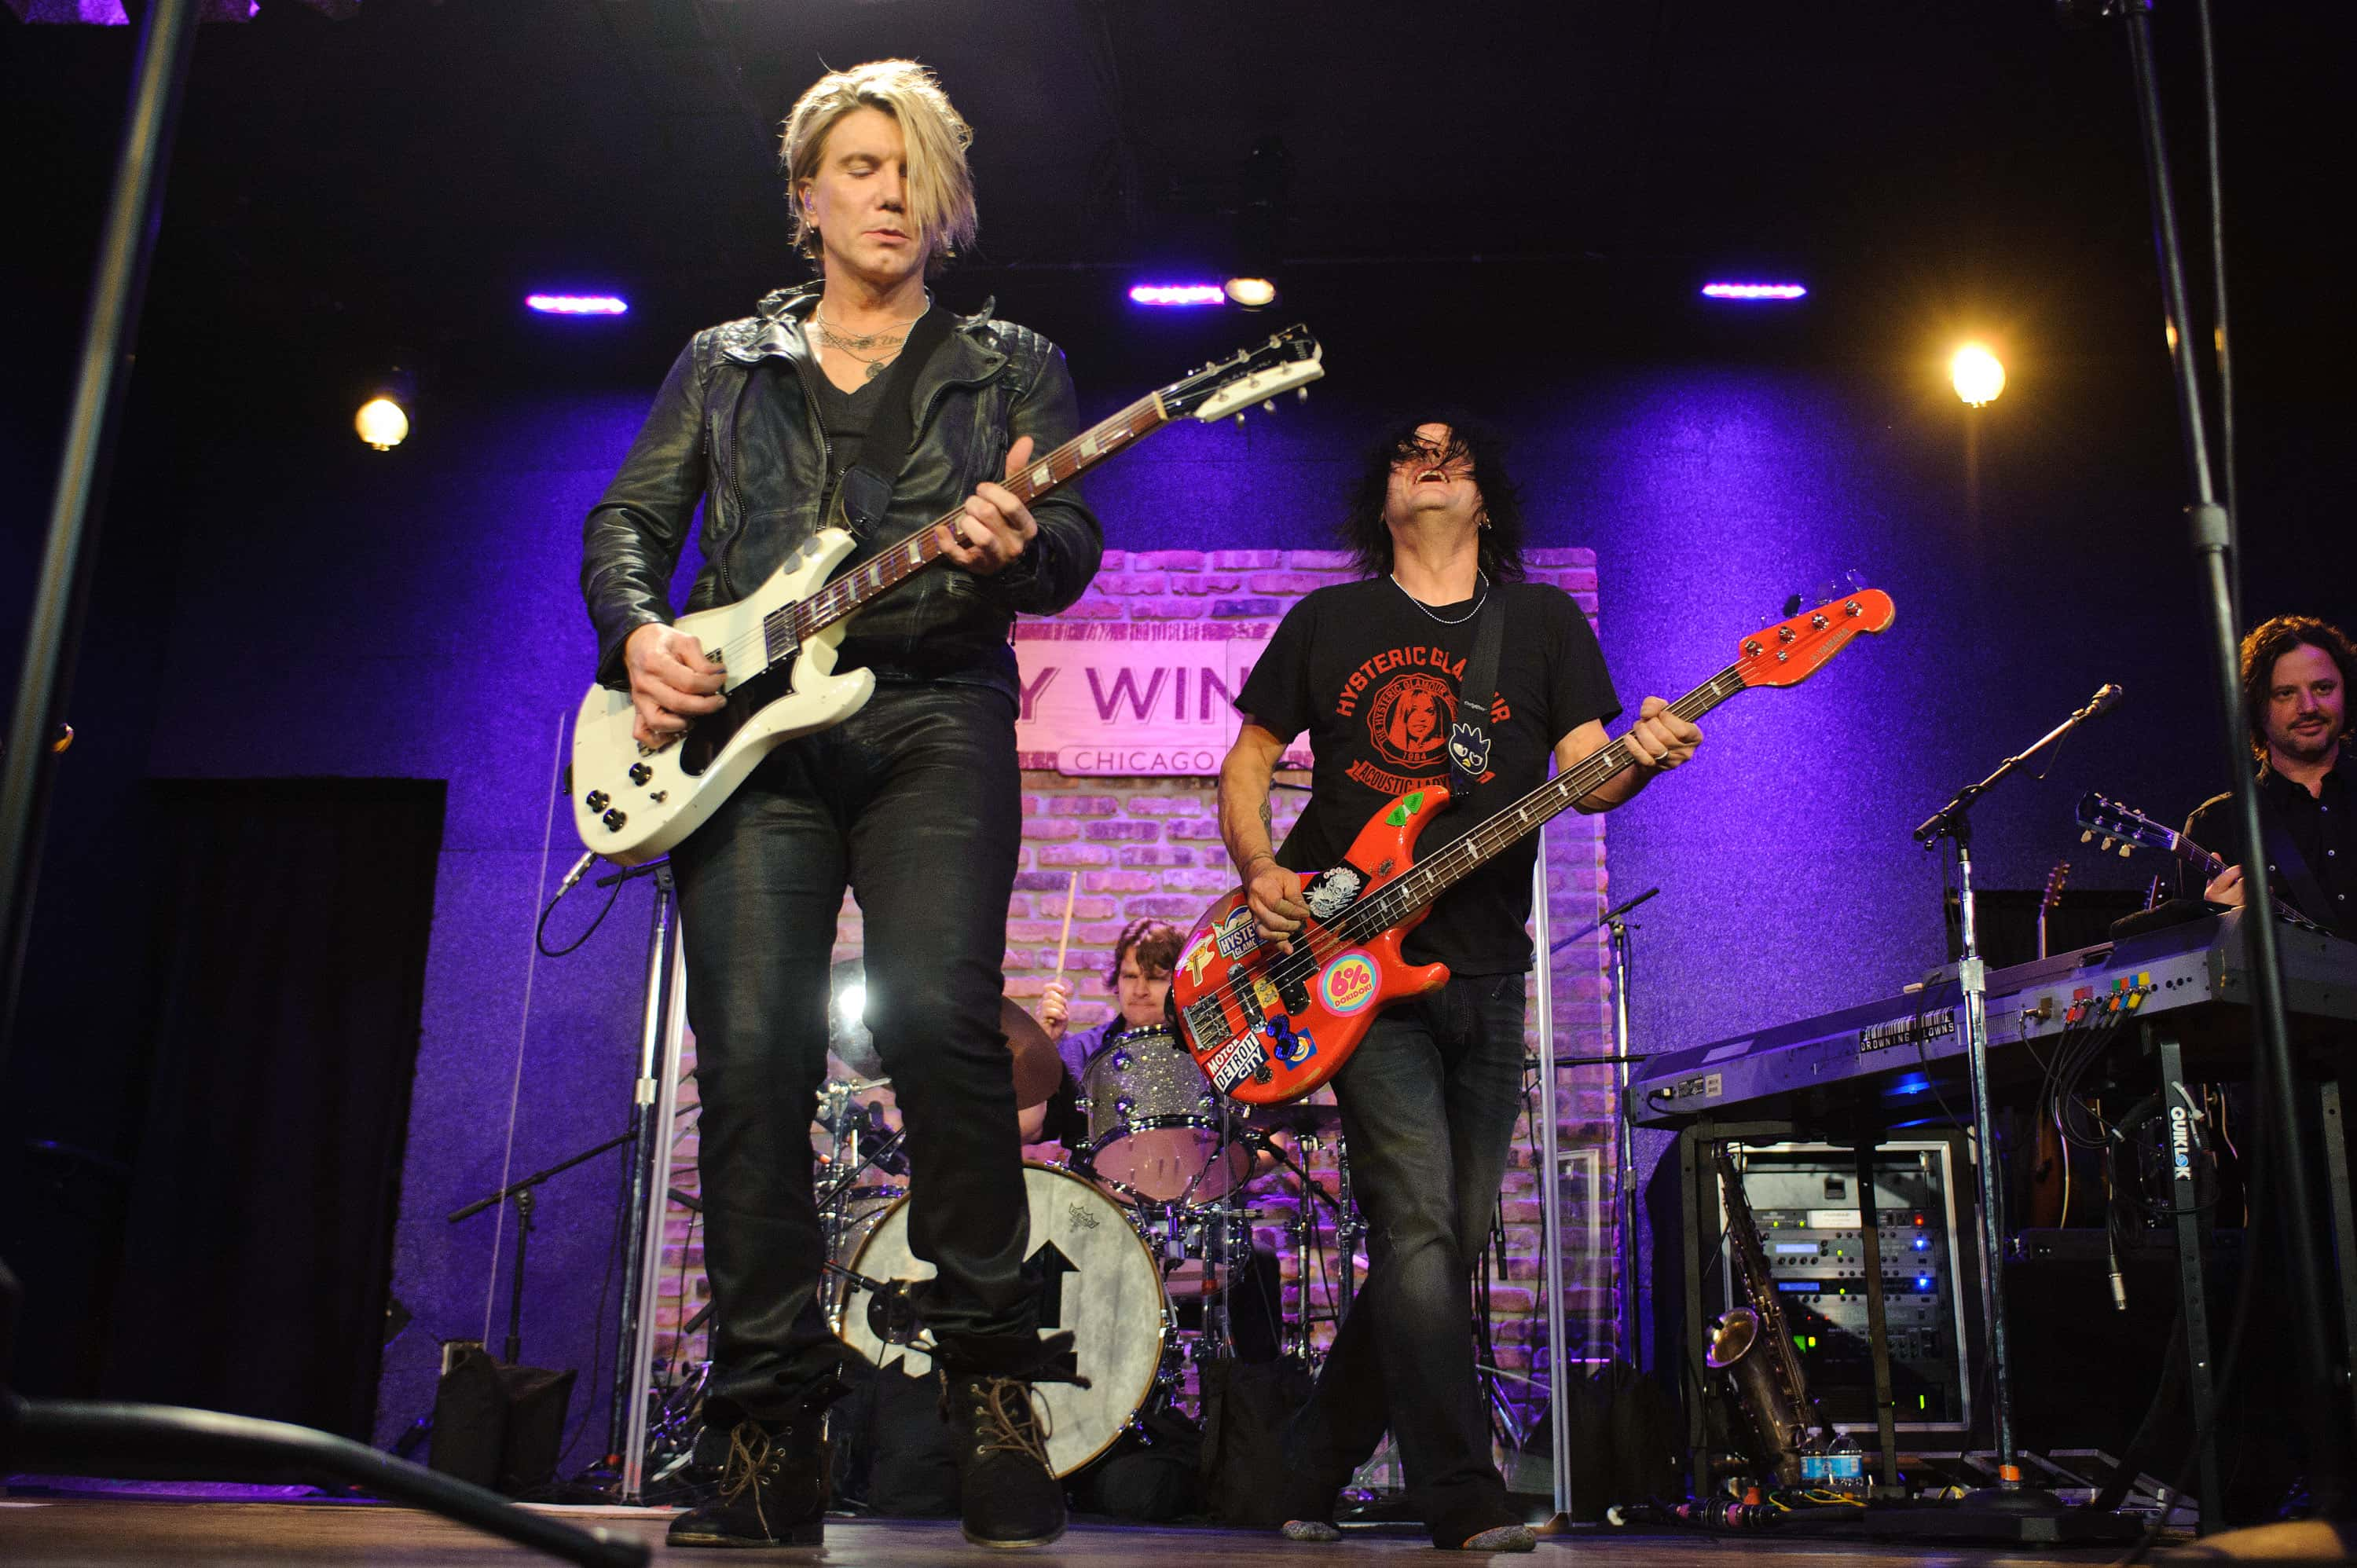 Goo Goo Dolls 'It's Christmas All Over': Release date, tracklist and all you need to know about ...